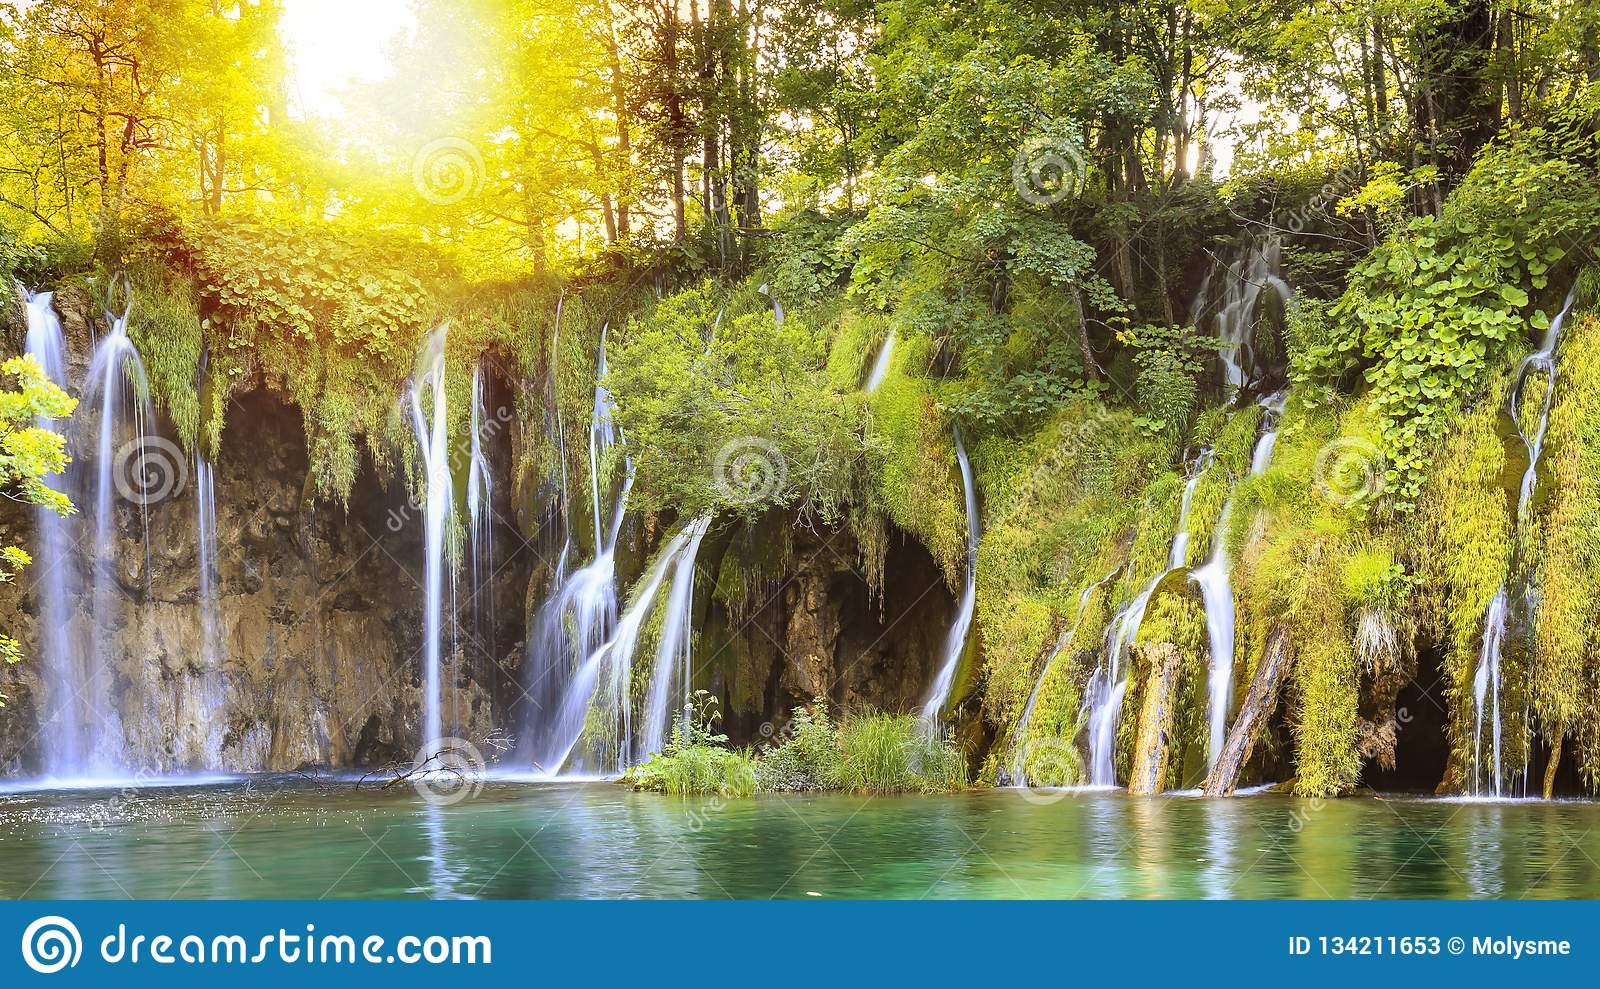 Close up of blue waterfalls in a green forest. Plitvice lakes, Croatia